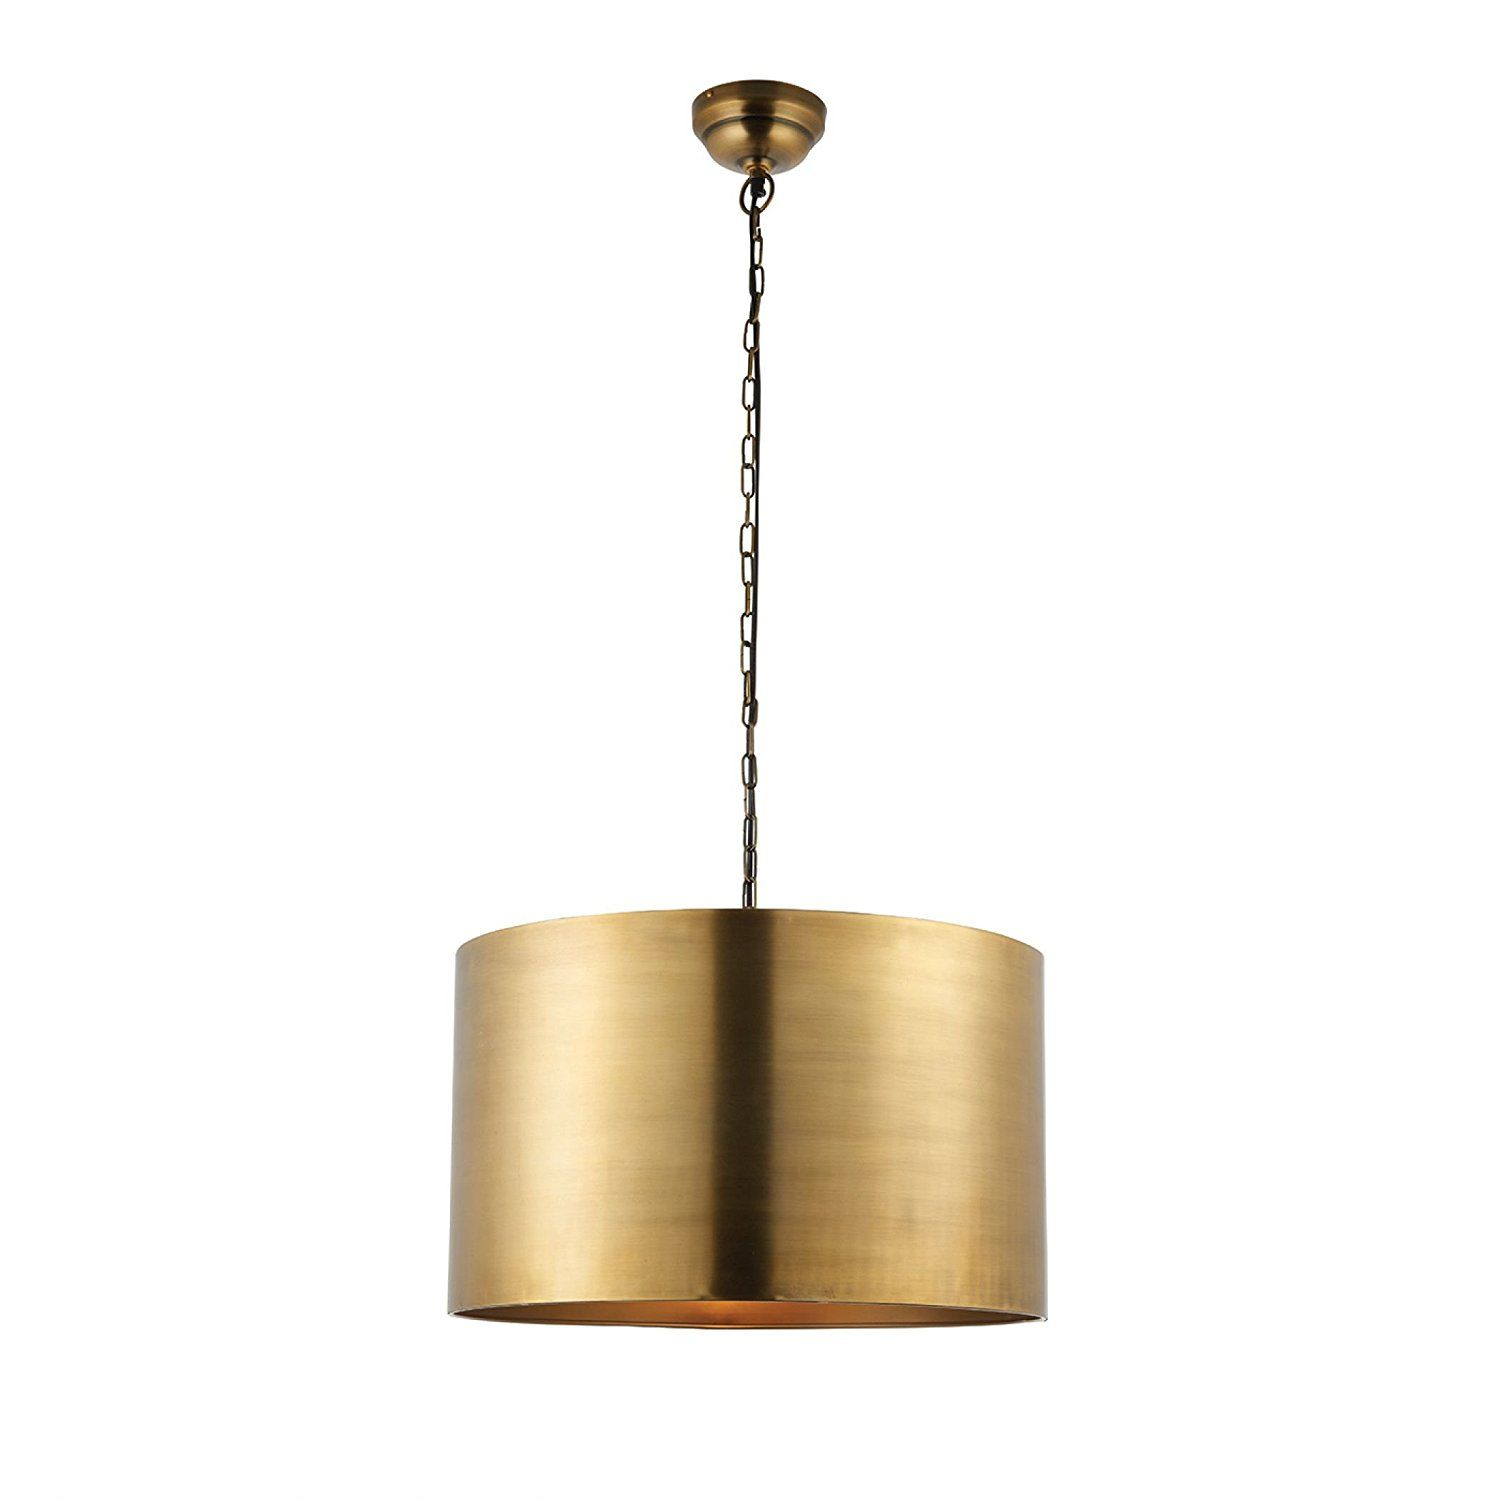 Endon morad modern contemporary decorative brass dimmable